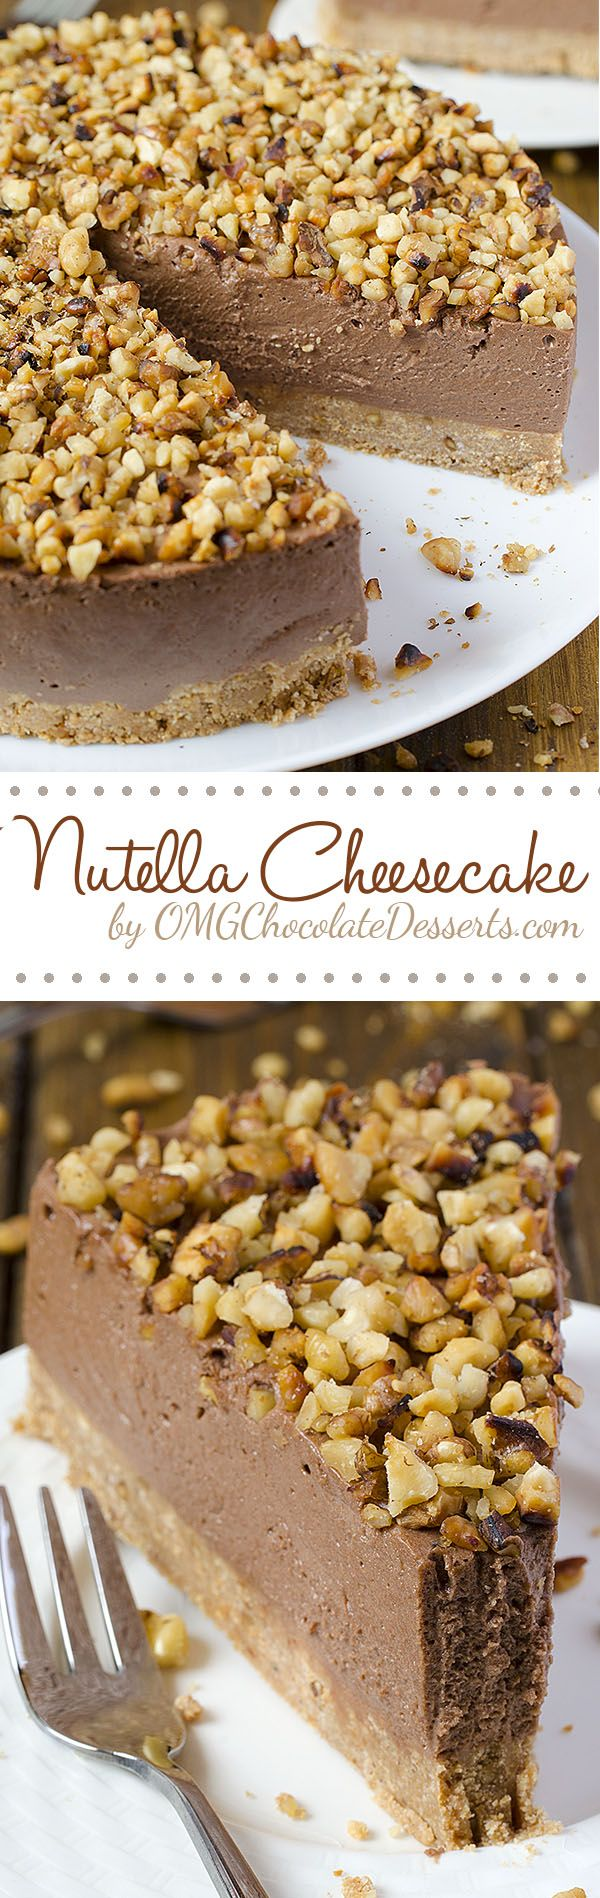 Quick but a decadent cake at the same time - Nutella Cheesecake. All you need is Graham Crackers, cream cheese, Nutella and some nuts, and only 40 minutes.